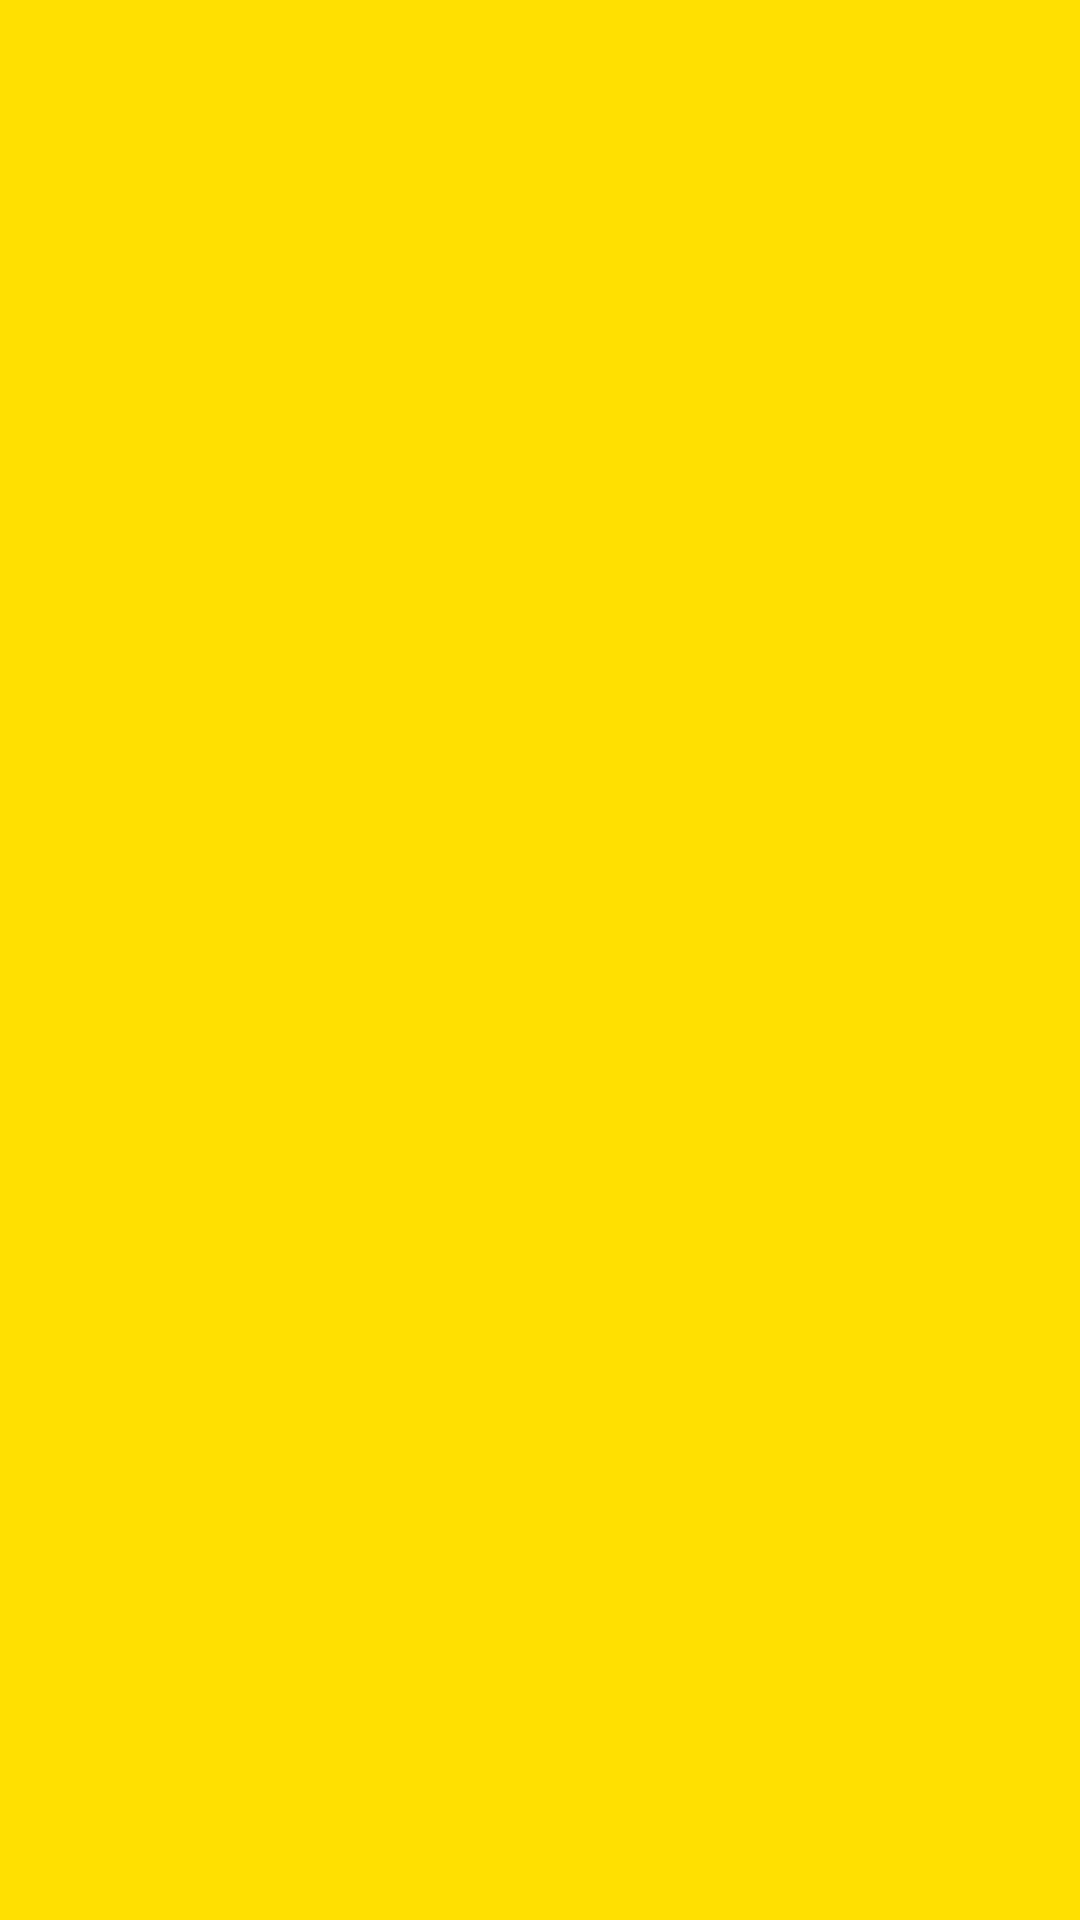 1080x1920 Golden Yellow Solid Color Background